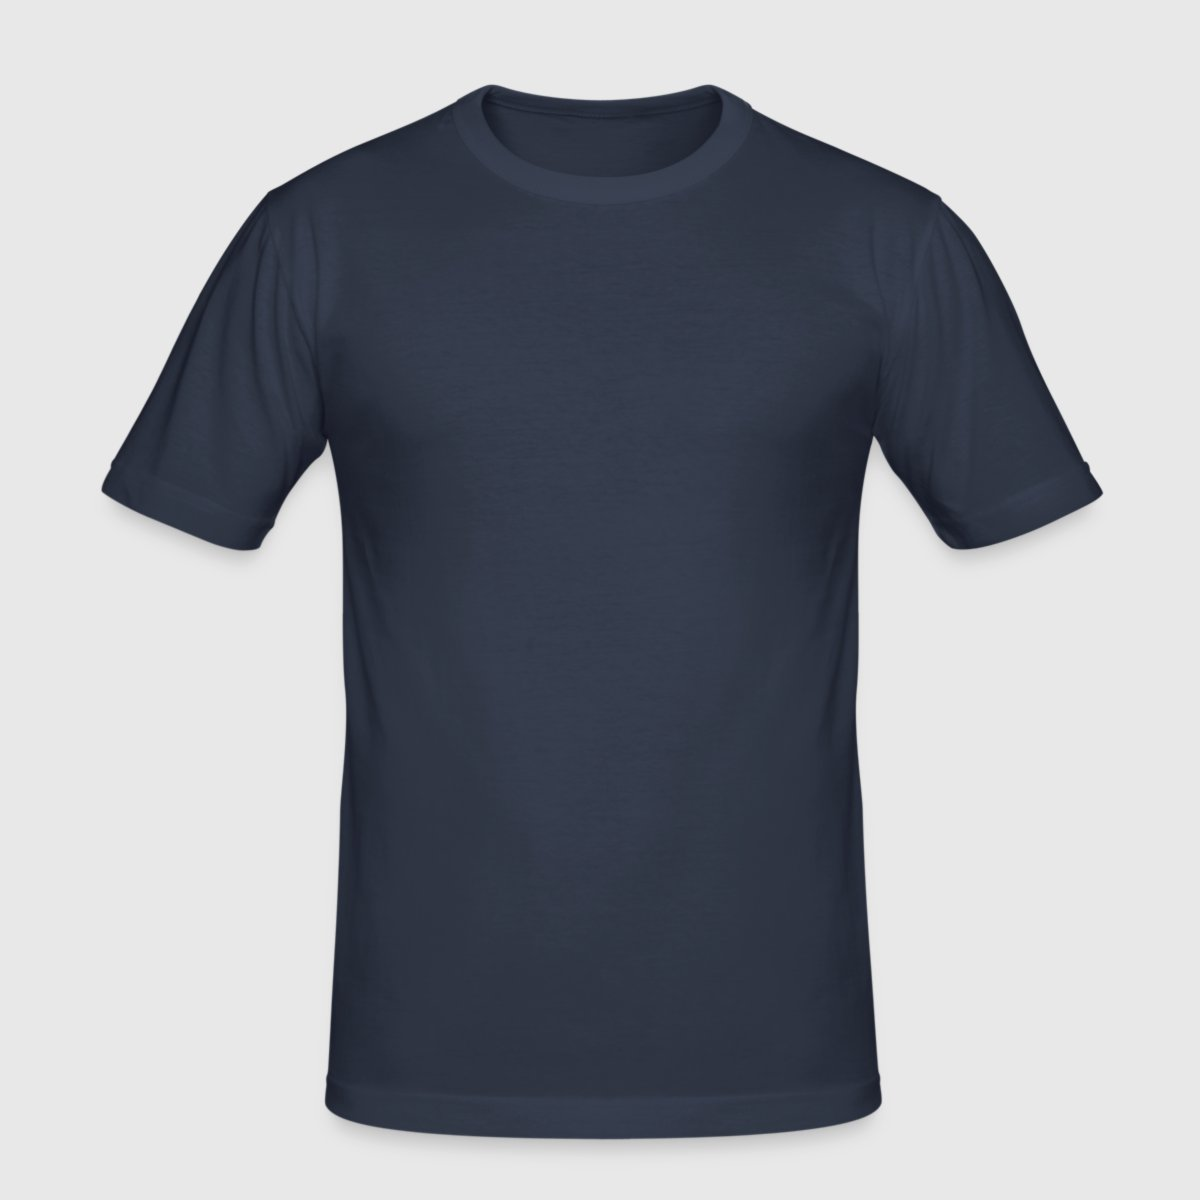 Mannen slim fit T-shirt - Voor